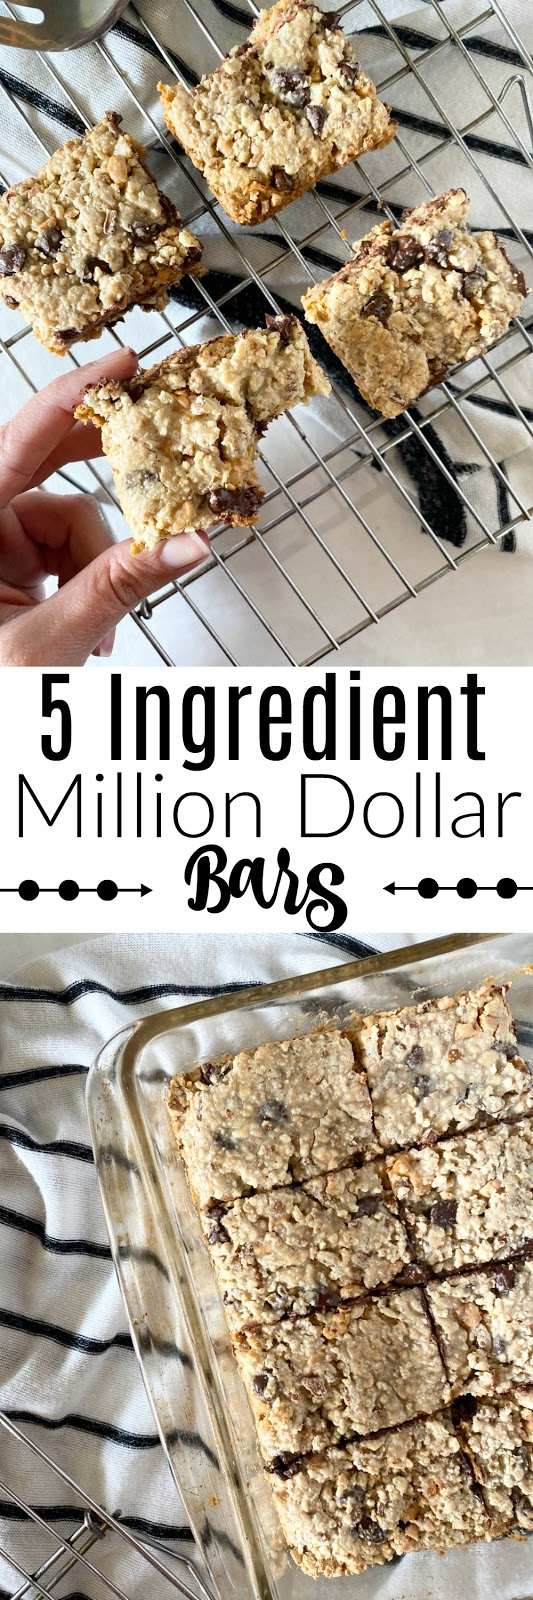 5 Ingredient Million Dollar Bars #dessert #sweetsavoryeats